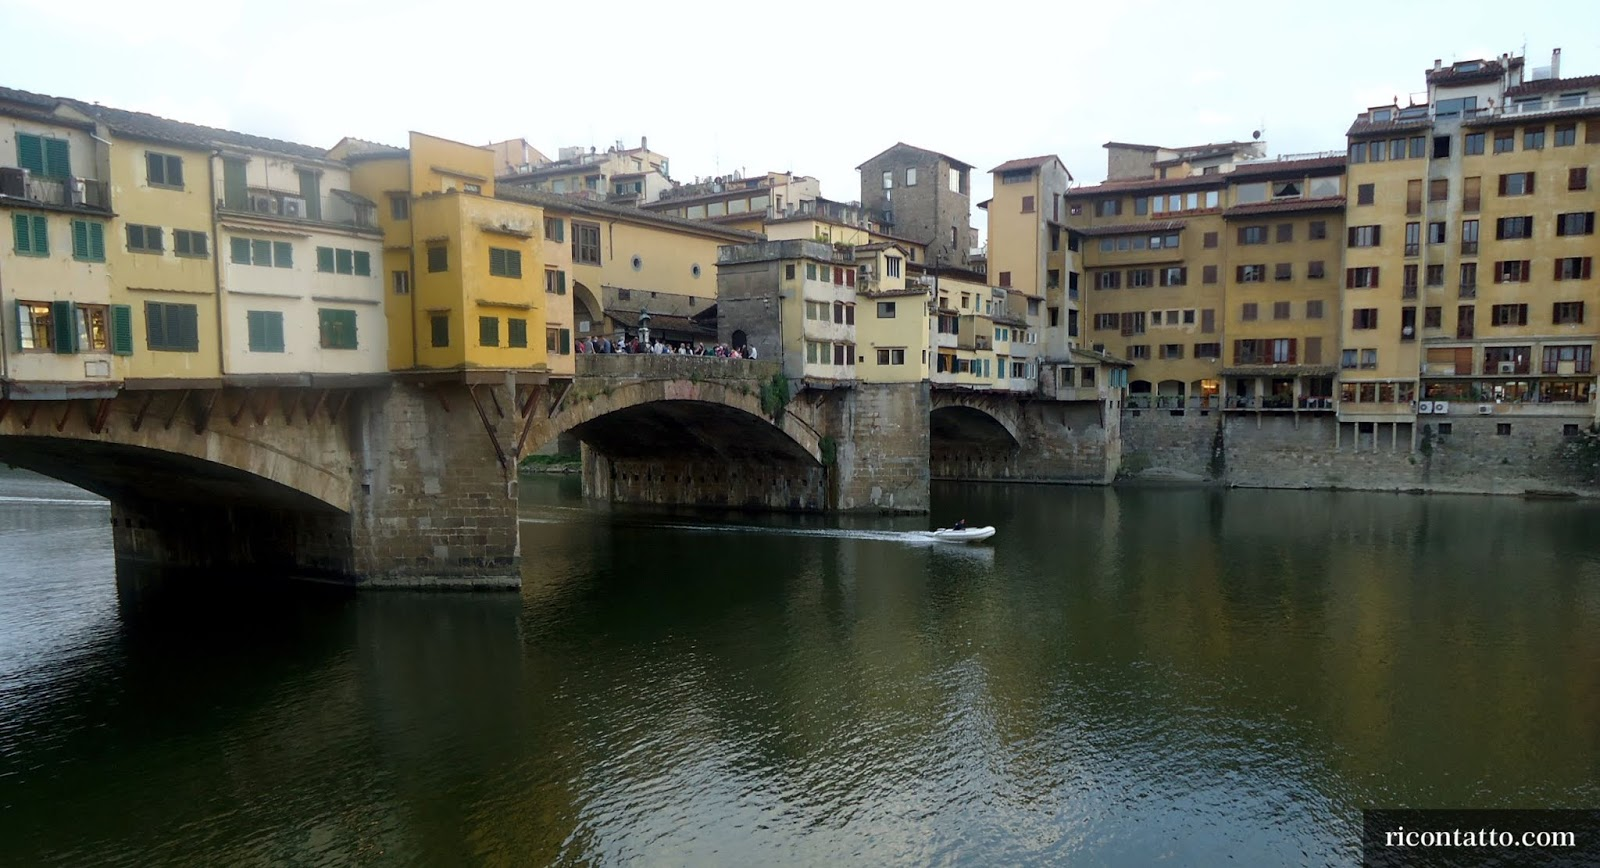 Firenze, Toscana, Italy - Photo #08 by Ricontatto.com